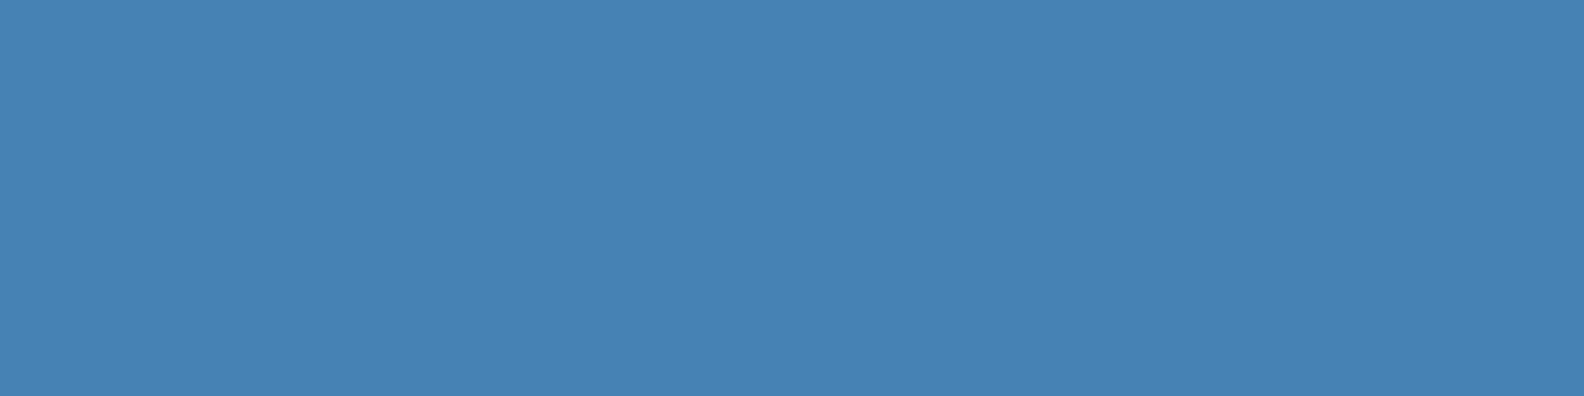 1584x396 Steel Blue Solid Color Background